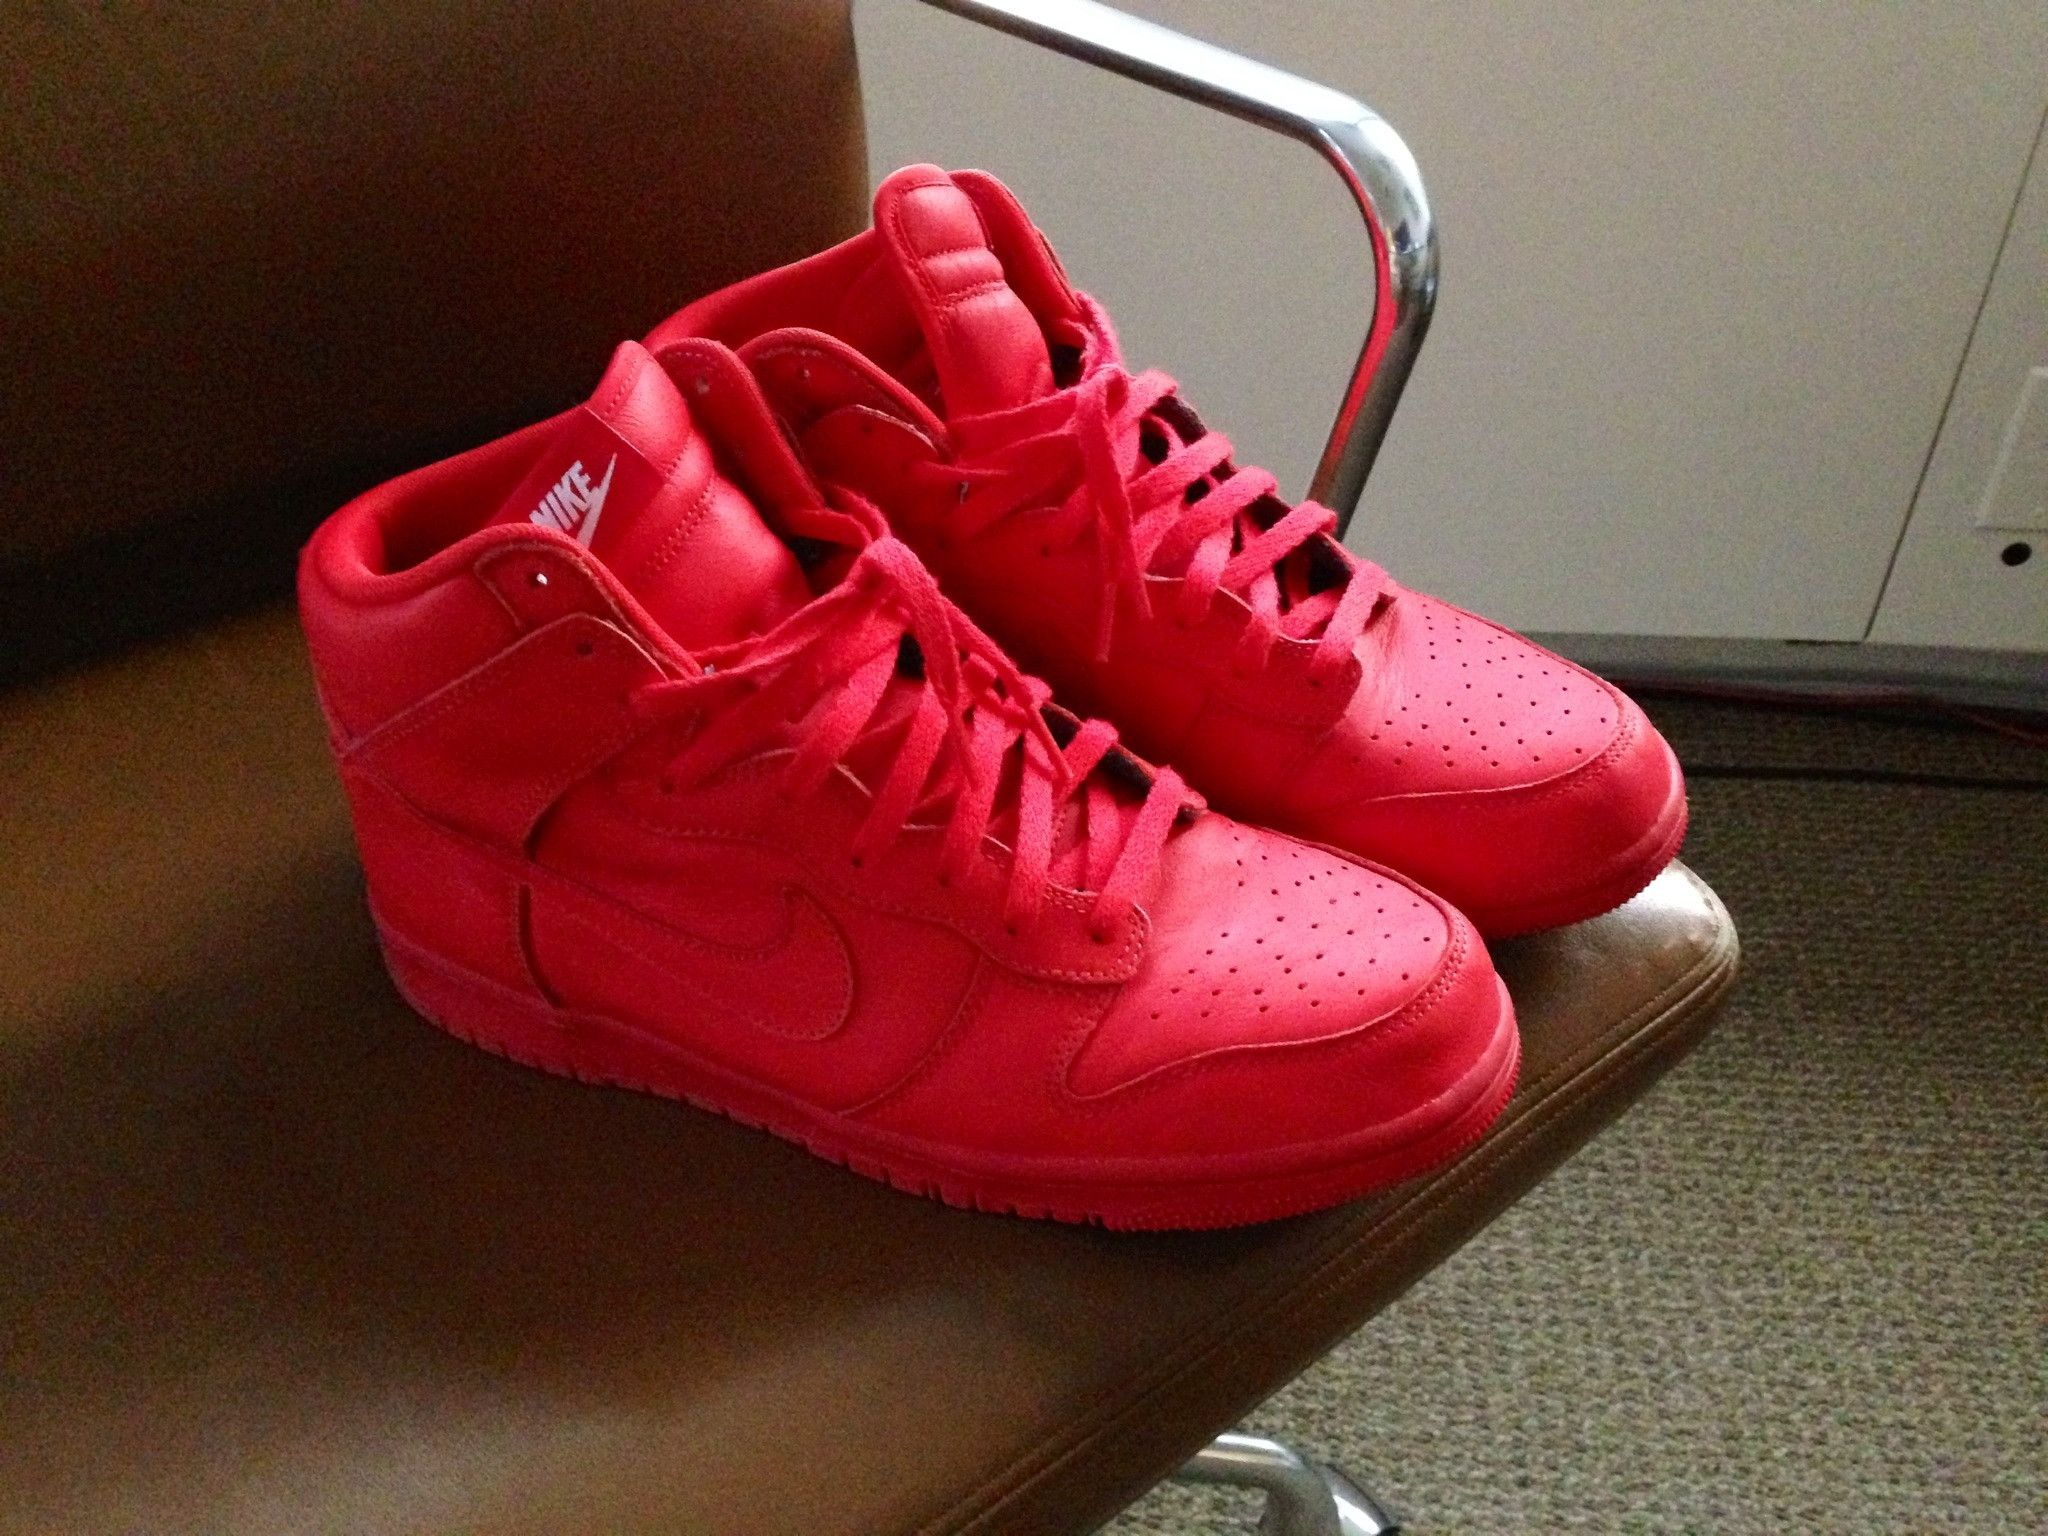 all red sneakers | All red sneakers | Pinterest | Sneakers, UX/UI ...